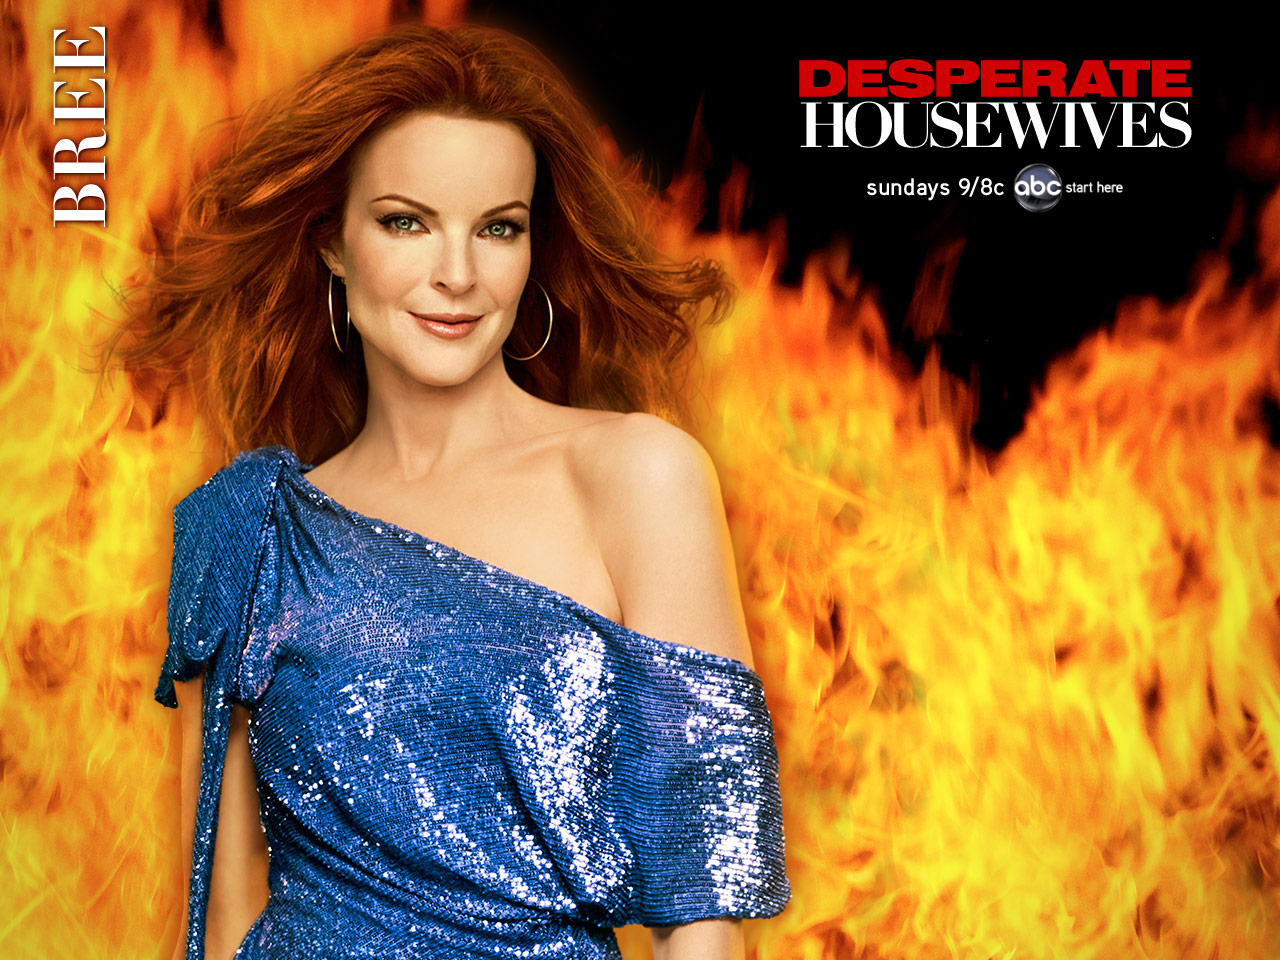 http://3.bp.blogspot.com/_k0qcqtNtpOY/S9KHk48T84I/AAAAAAAAMWQ/T0cTKoJCrGg/s1600/Marcia_Cross_in_Desperate_Housewives_Wallpaper_1_800.jpg